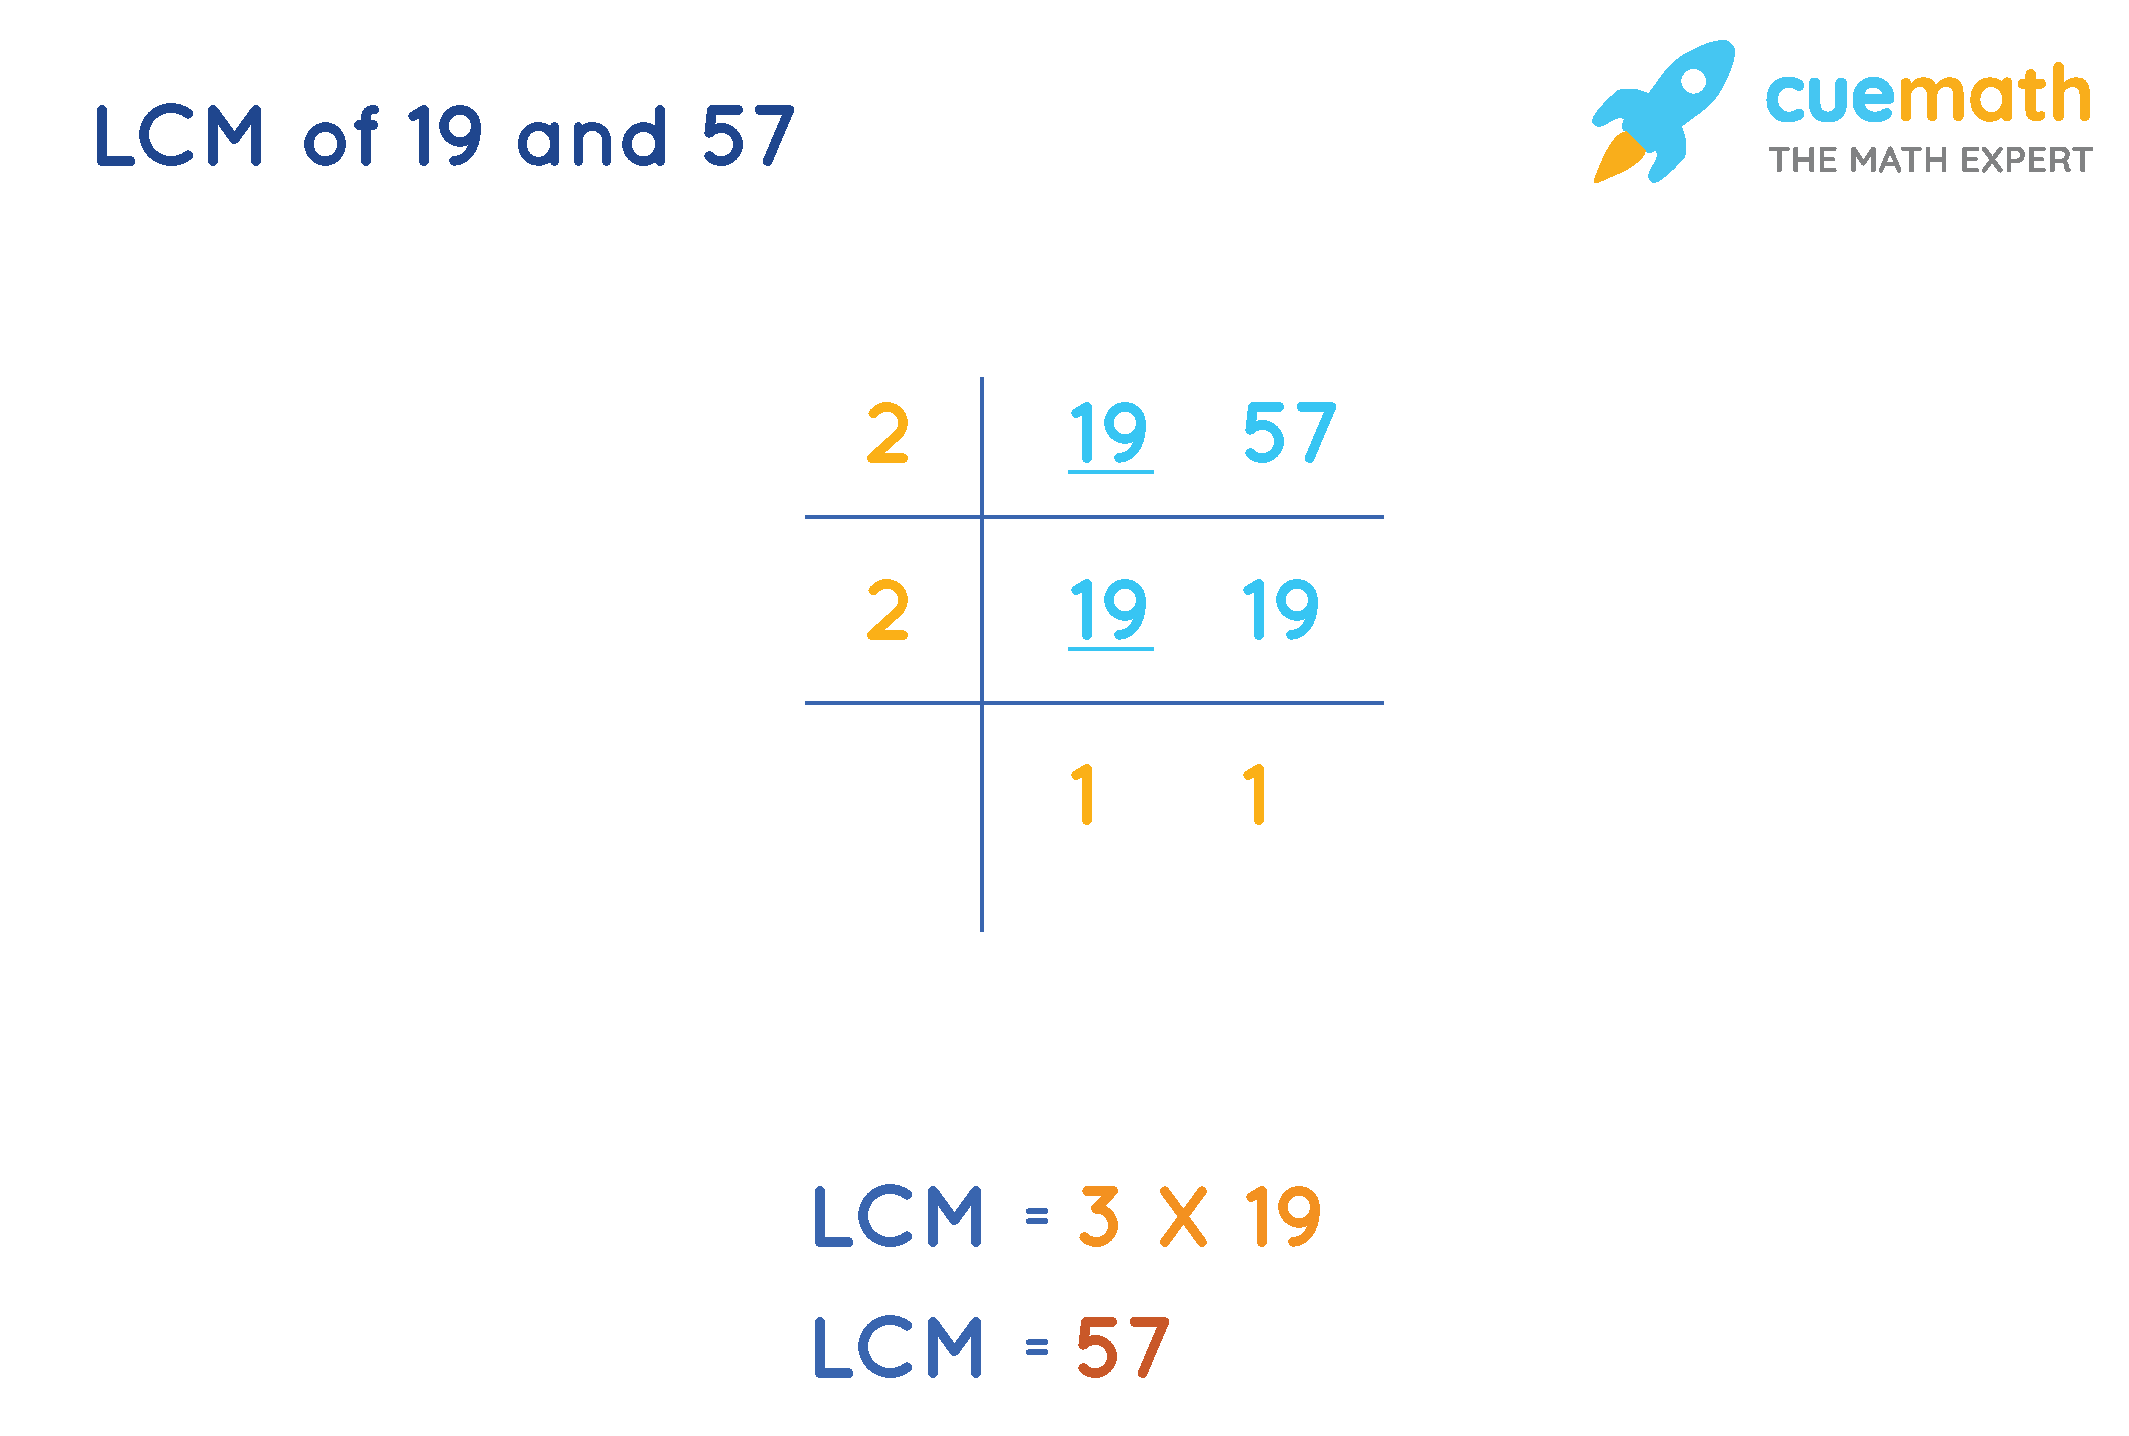 Common Division Method to FindLCM of 19 and 57